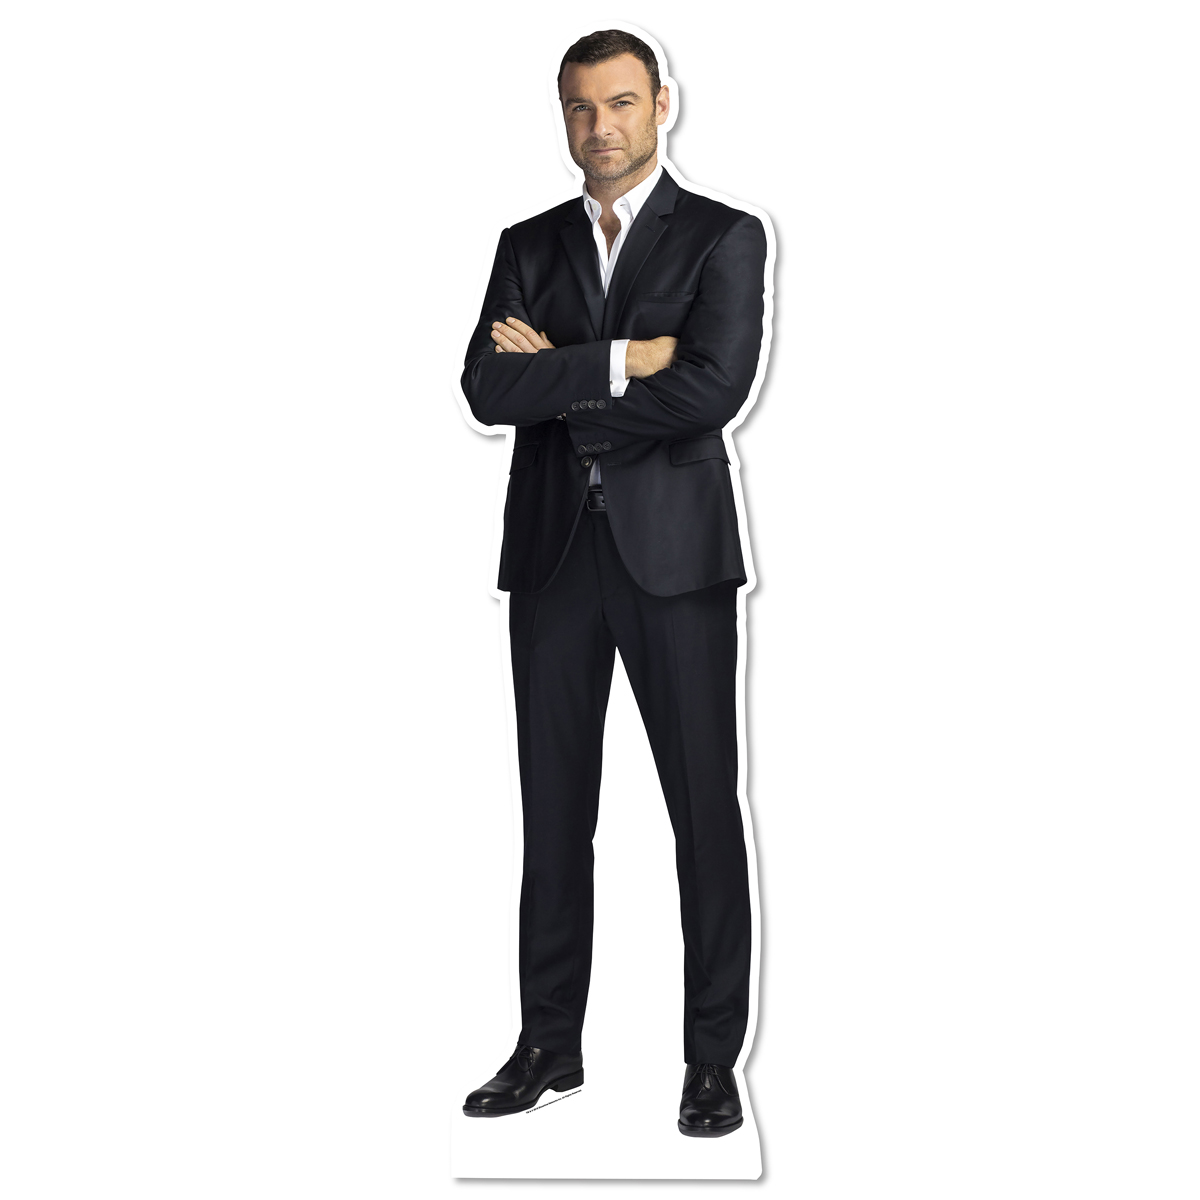 Ray Donovan Standee